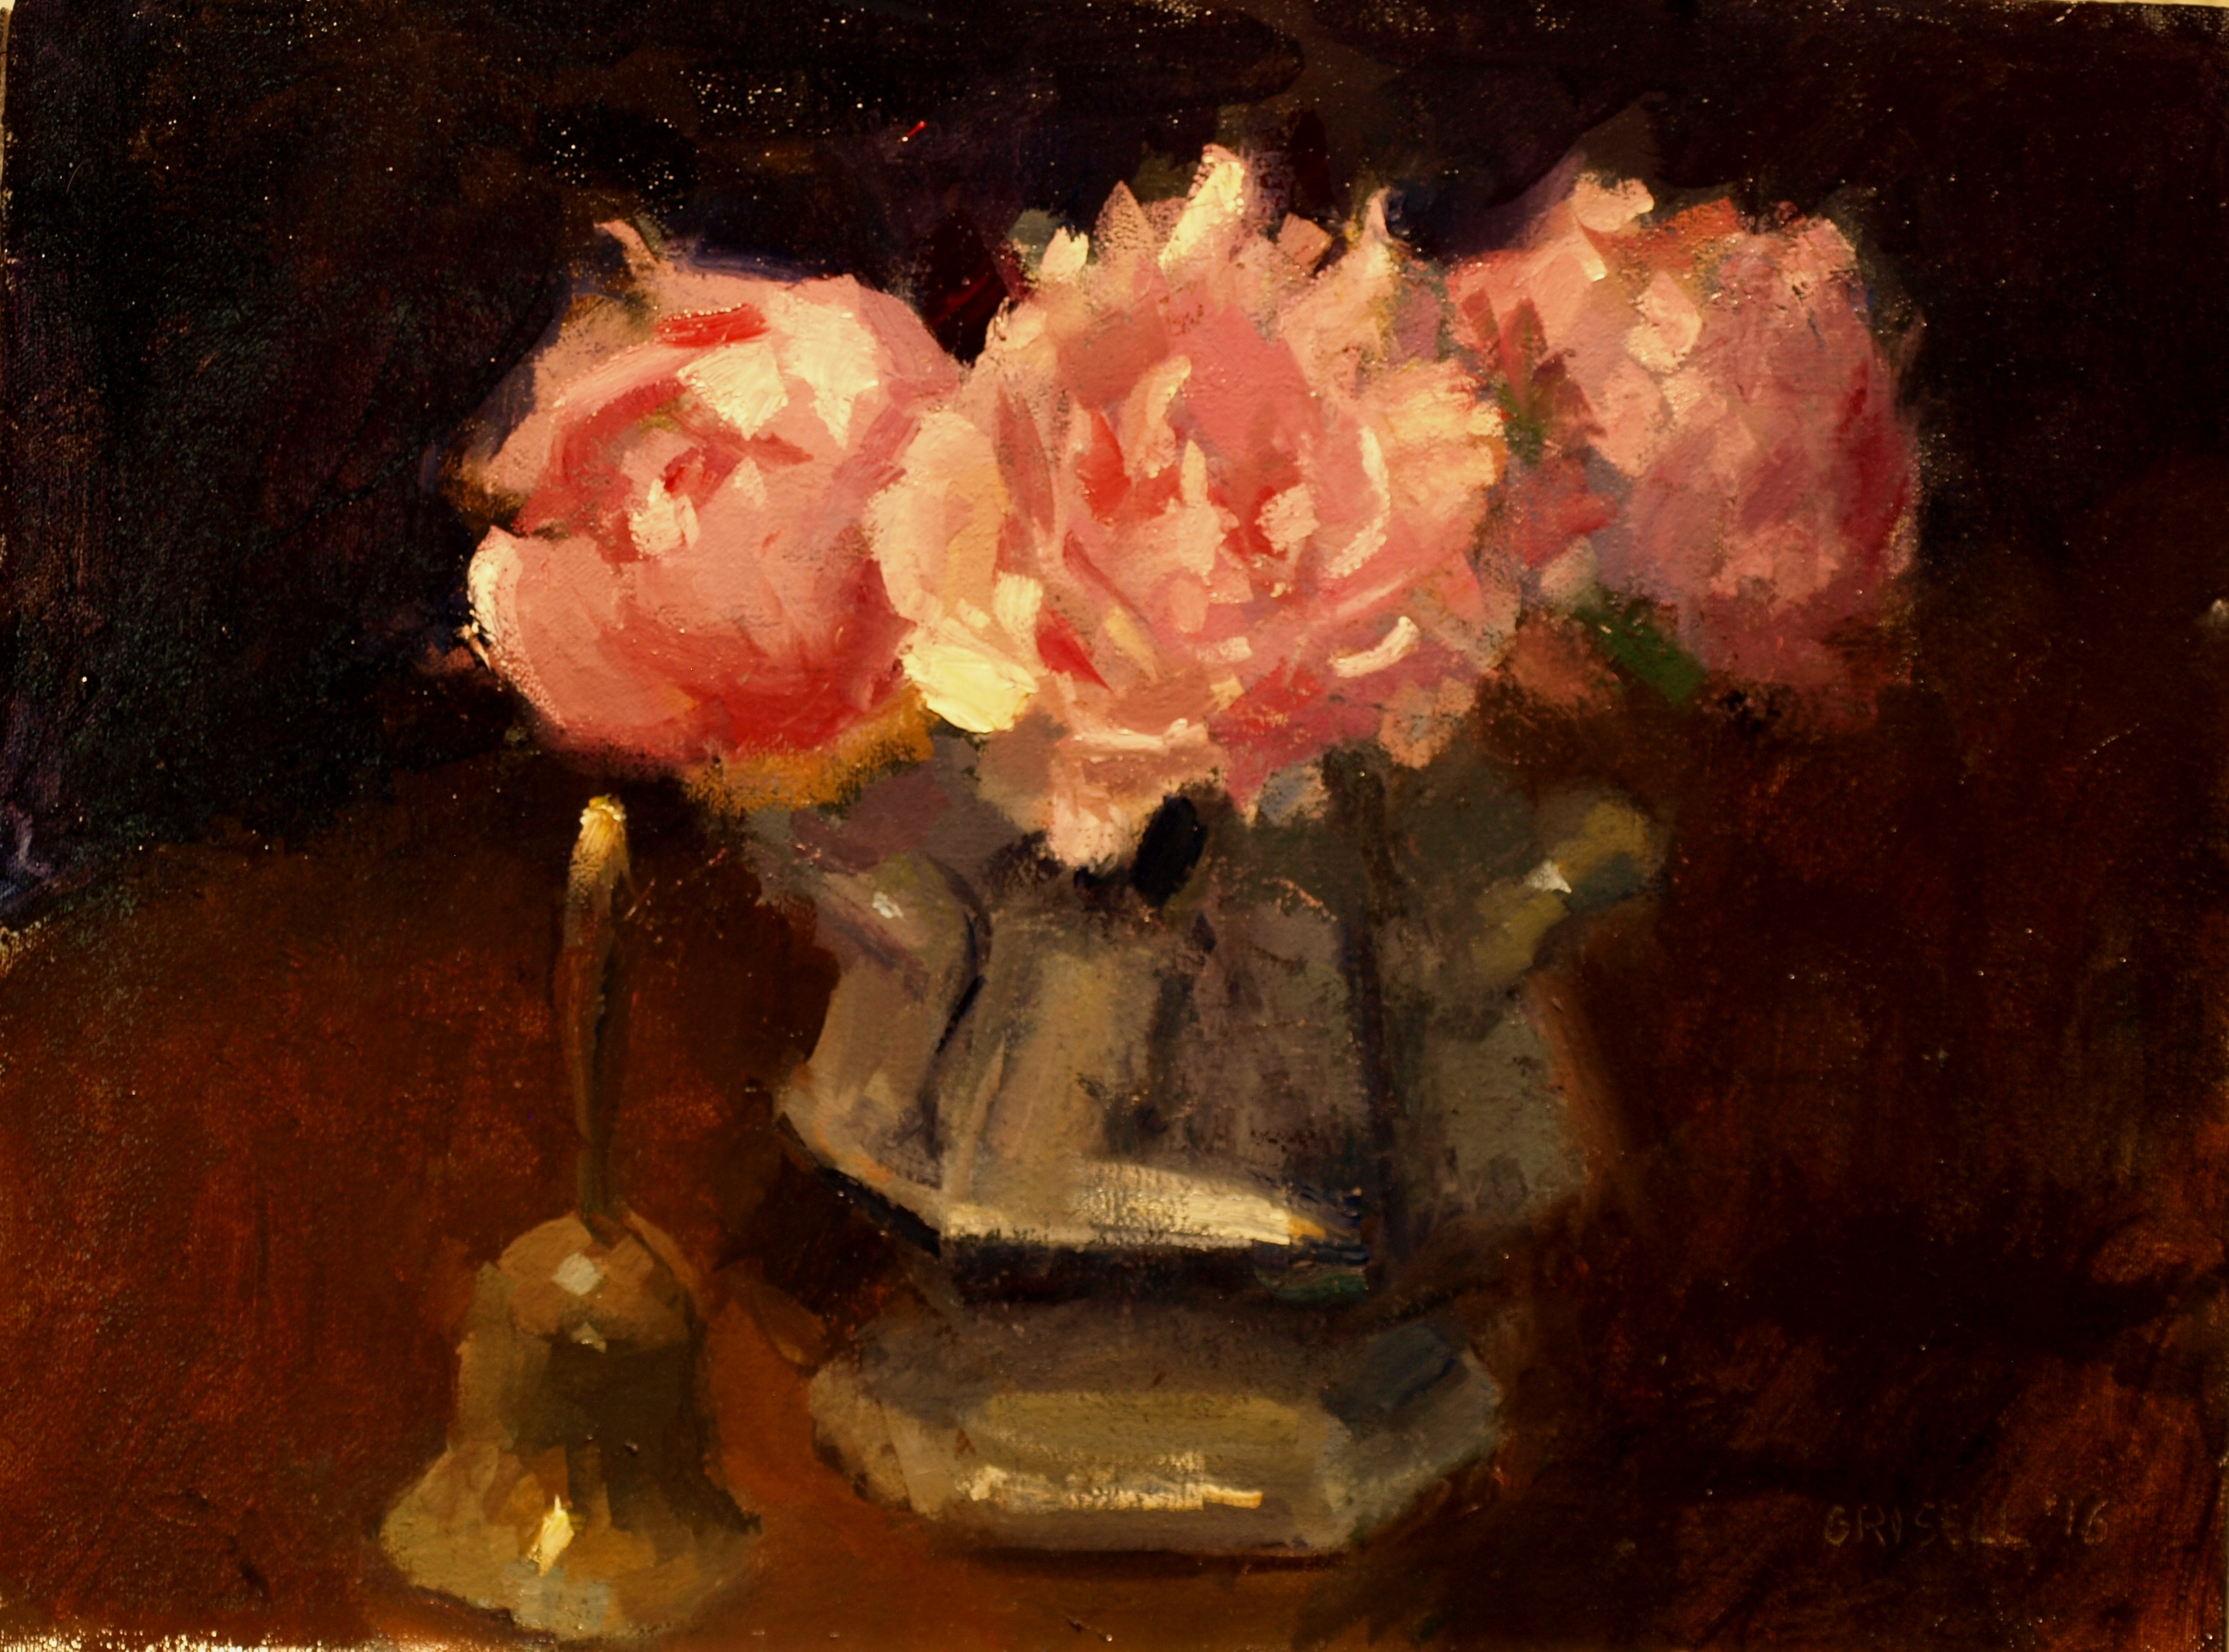 Peonies in Sugar Bowl, Oil on Canvas on Panel, 12 x 16 Inches, by Susan Grisell, $300